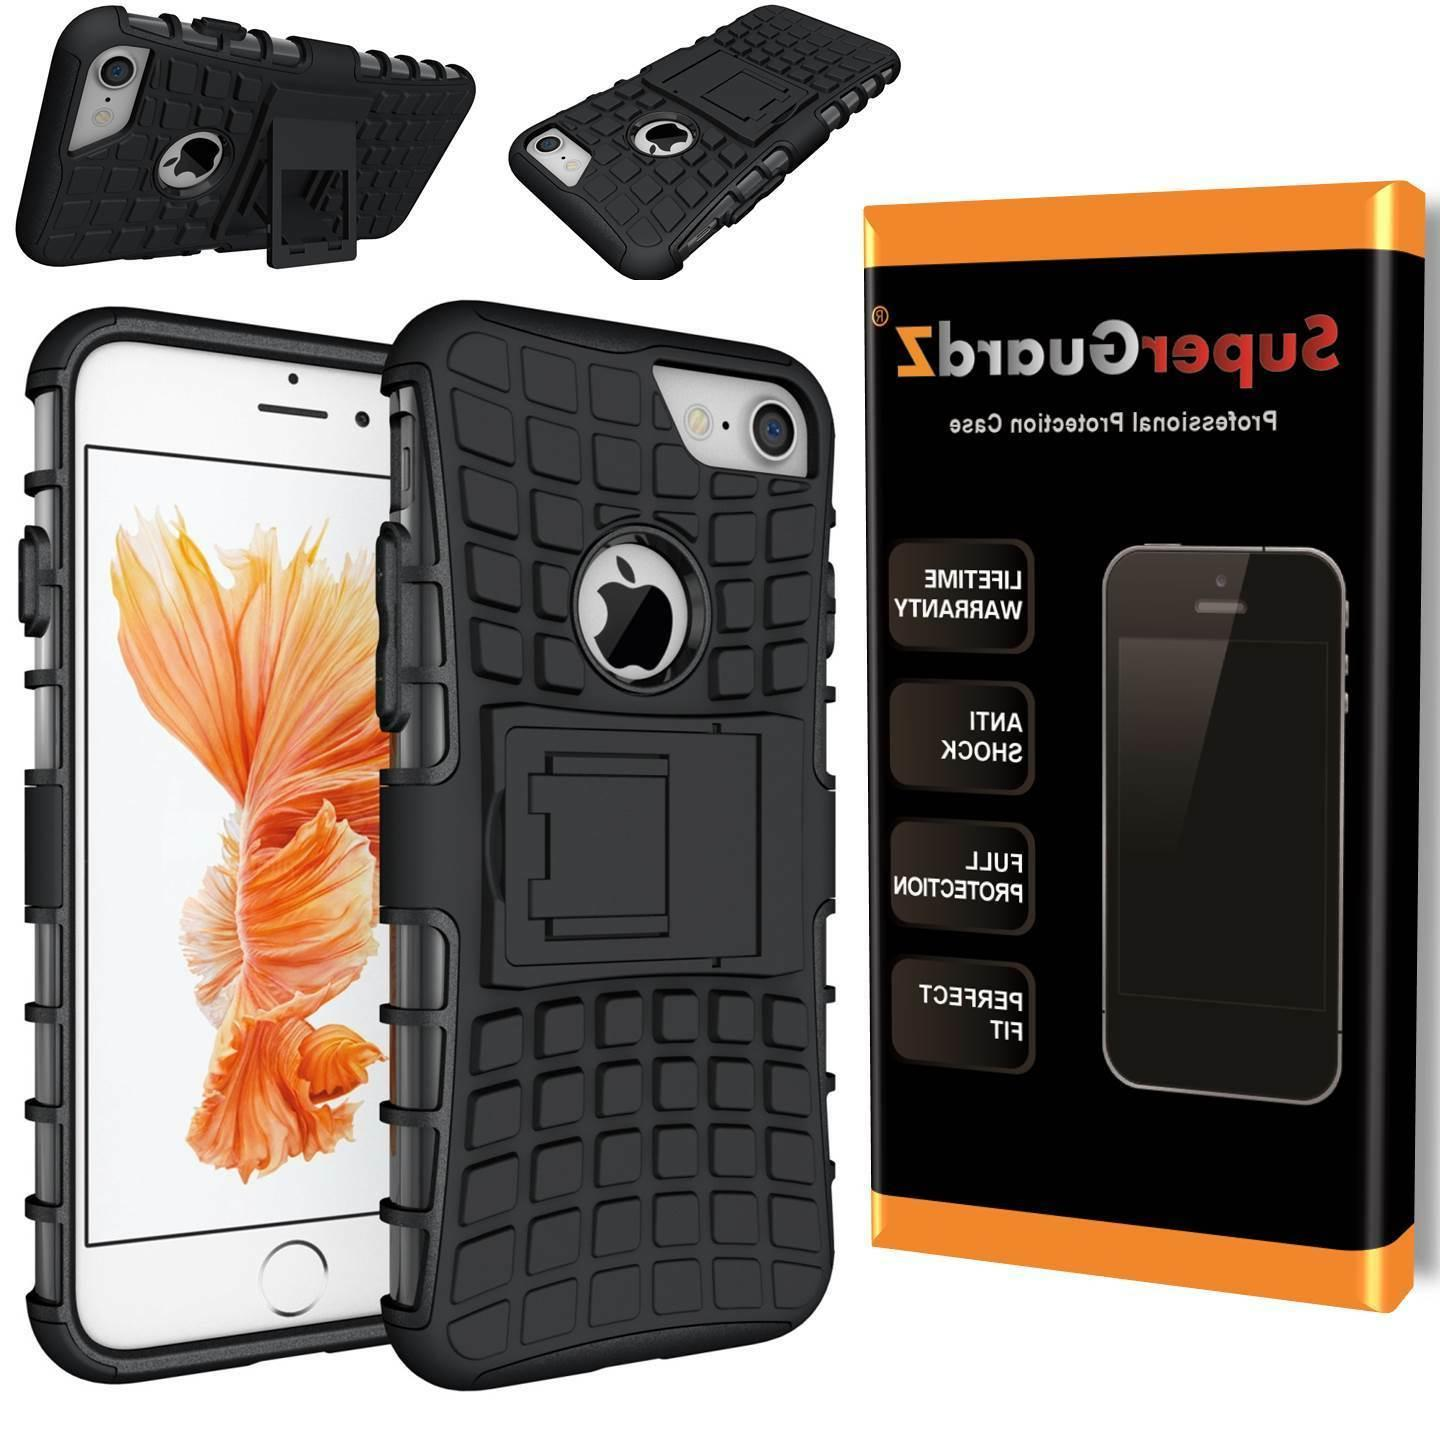 heavy duty shockproof hard case cover armor